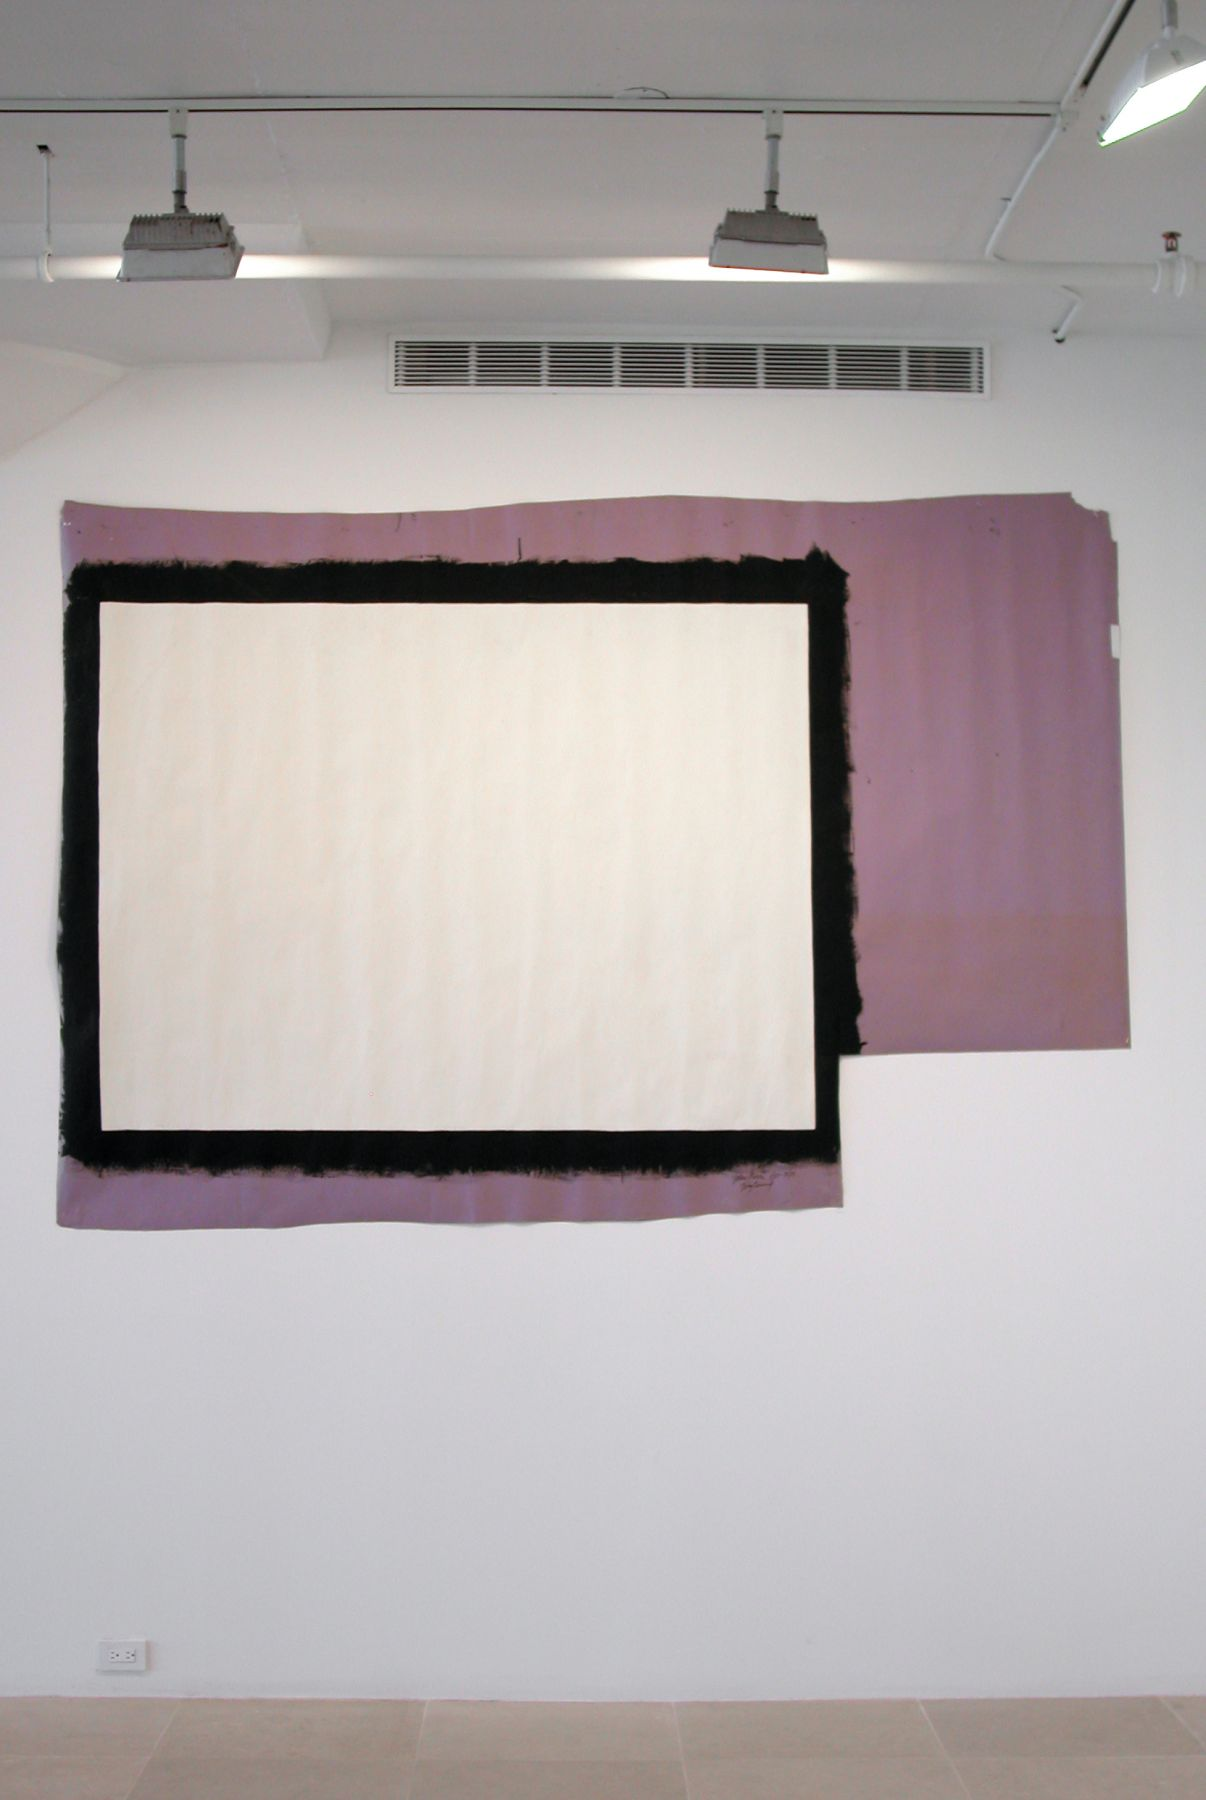 Tony Conrad  Yellow Movie 1/25-31/73, 1973  Emulsion: Gull white flat interior latex, Magicolor No. 3011 - 11  Base: Lilac seamless paper  73 x 130 inches